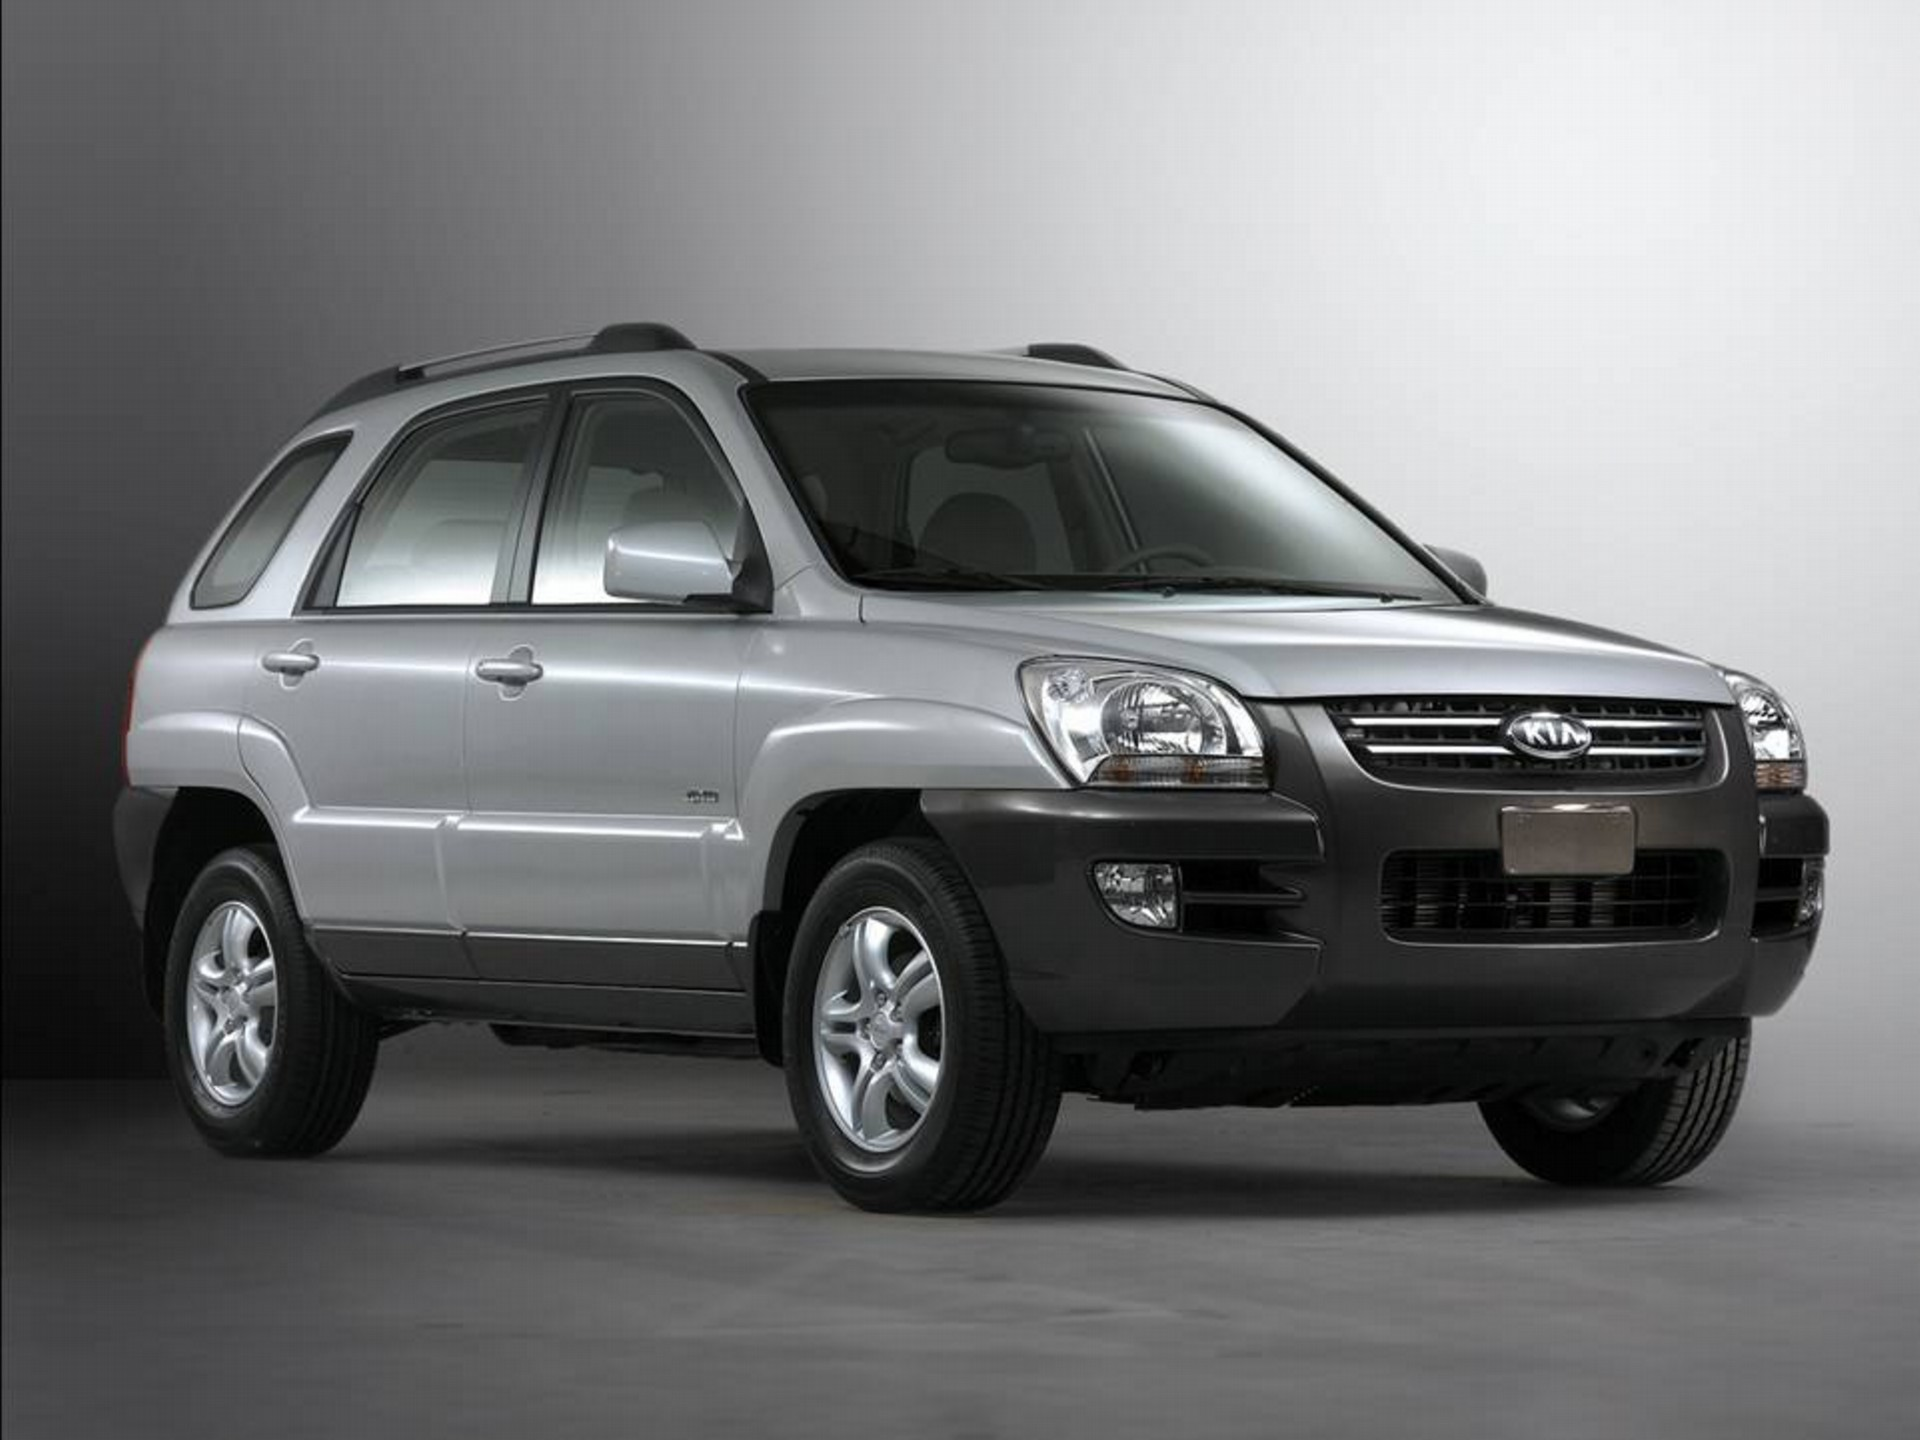 2007 Kia Sportage Technical and Mechanical Specifications